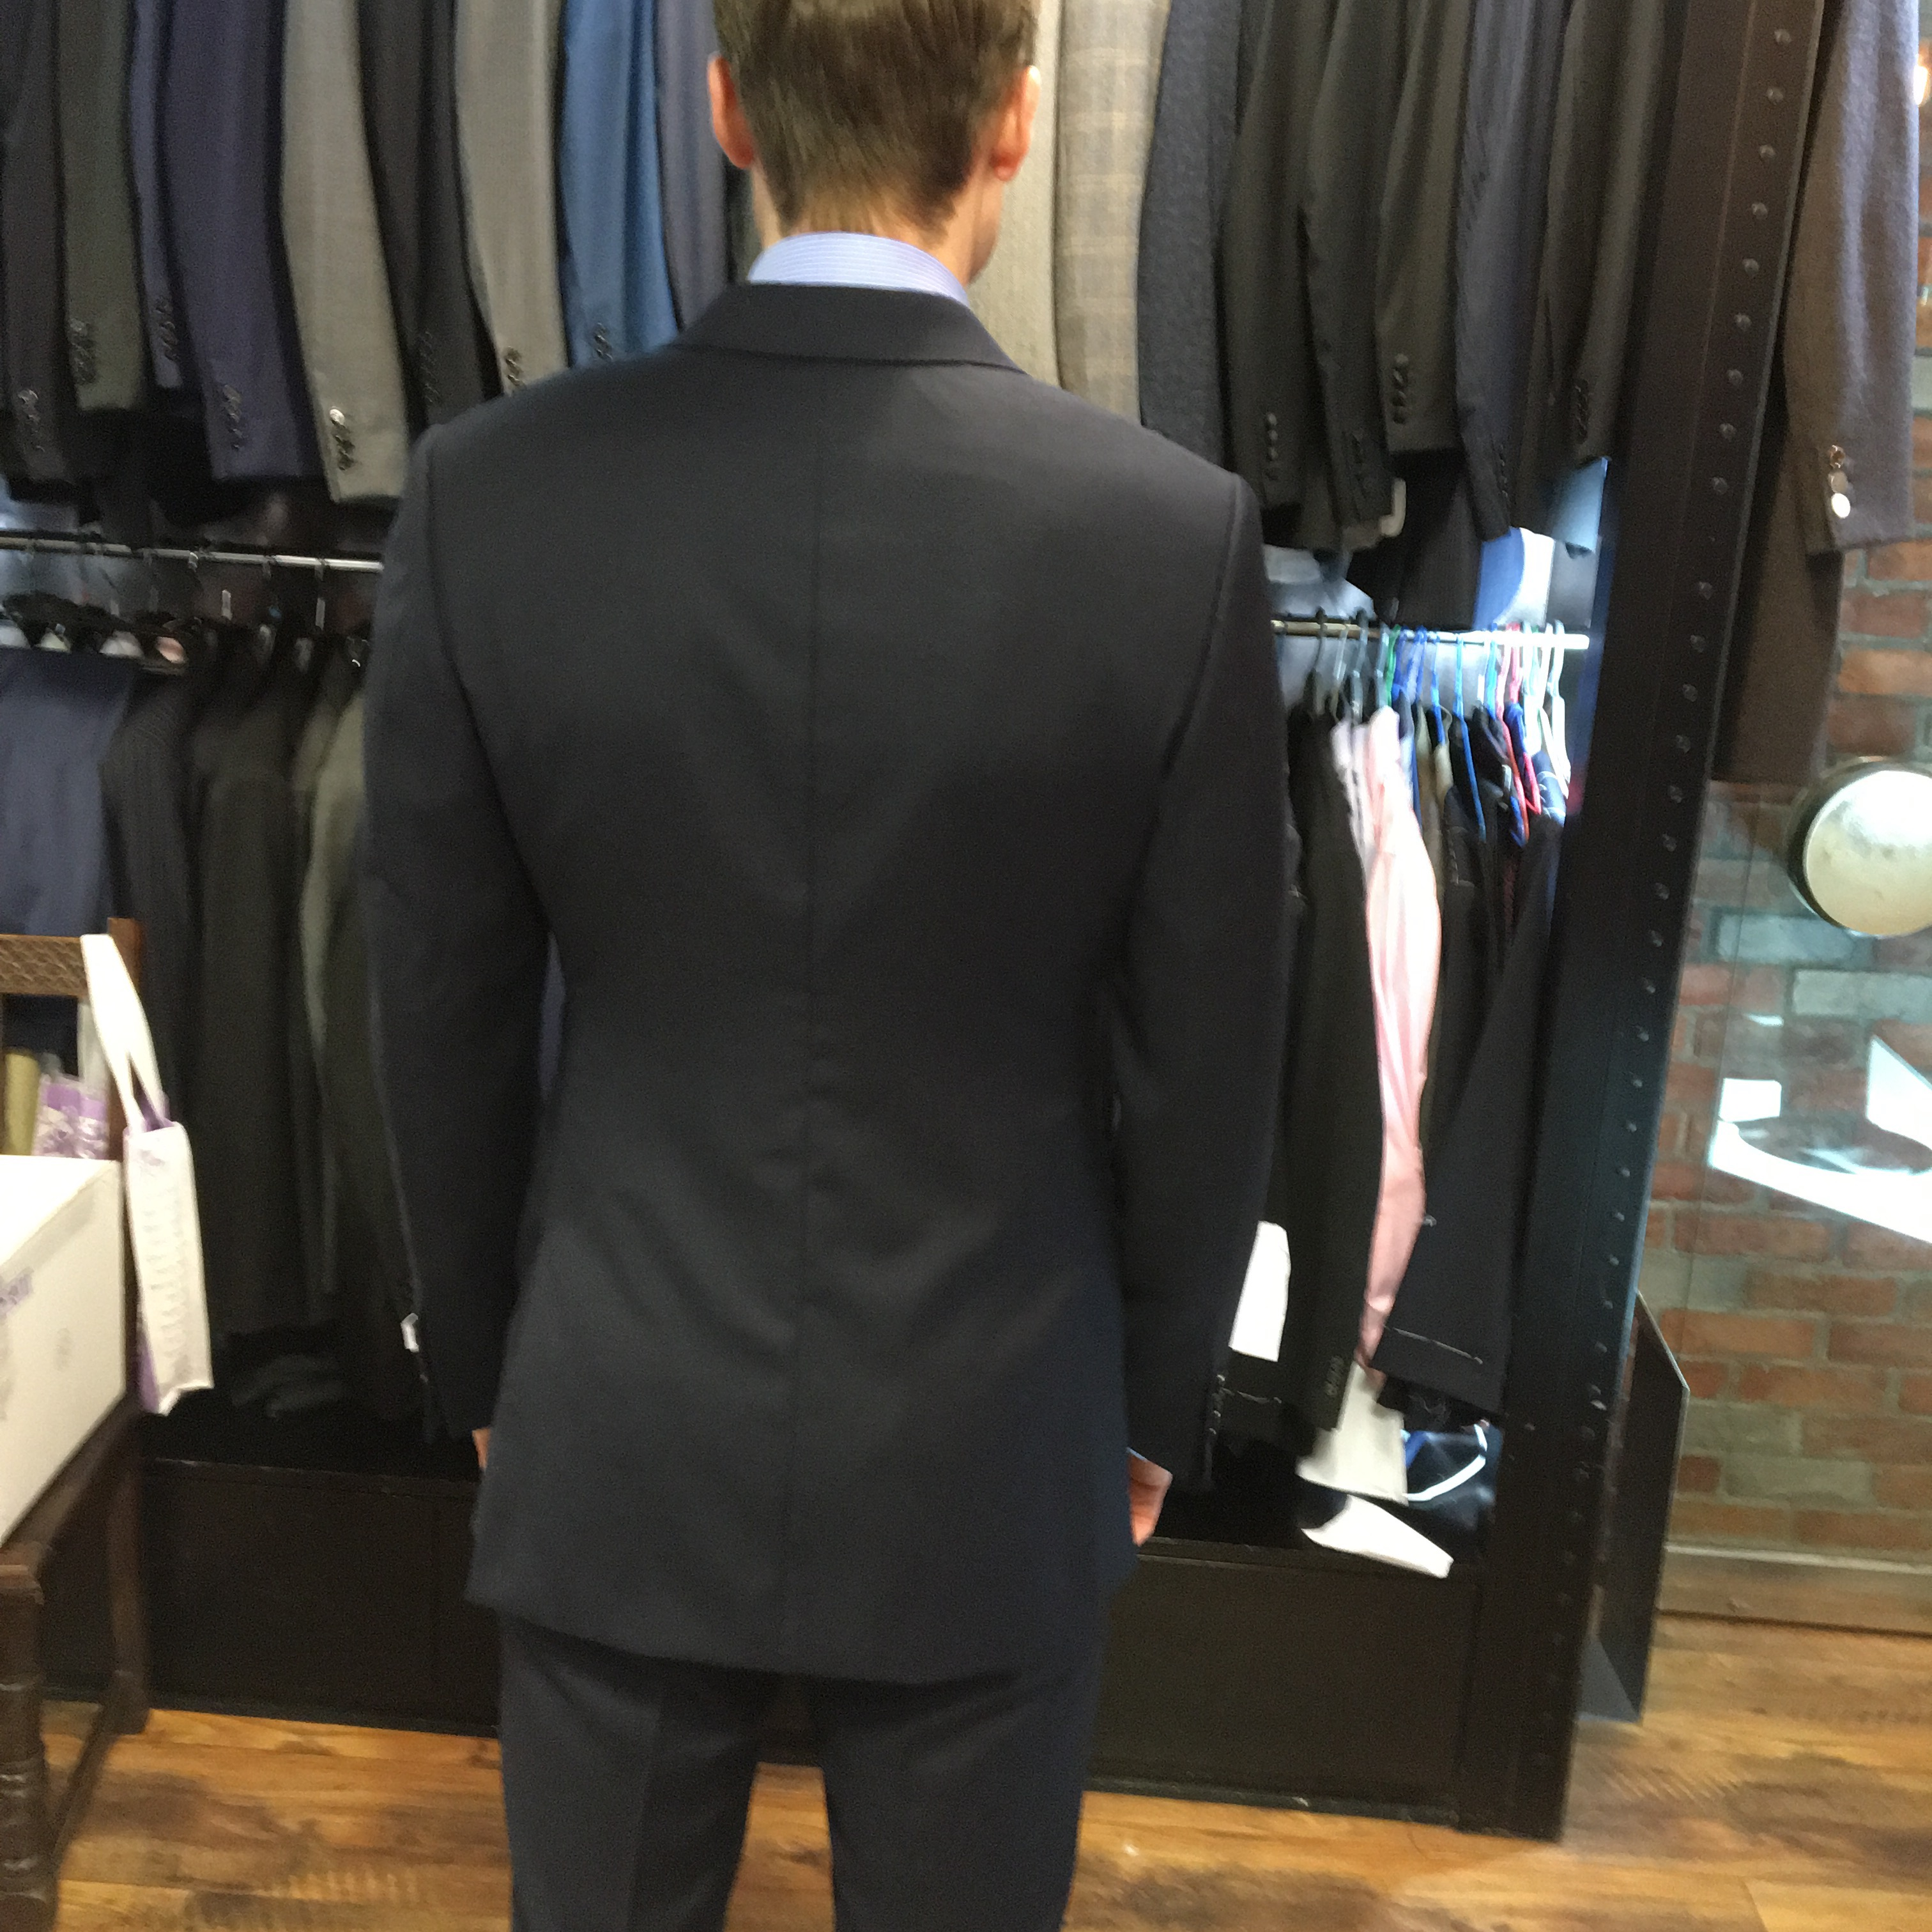 MTM suit jacket: bunching near seam at lower back